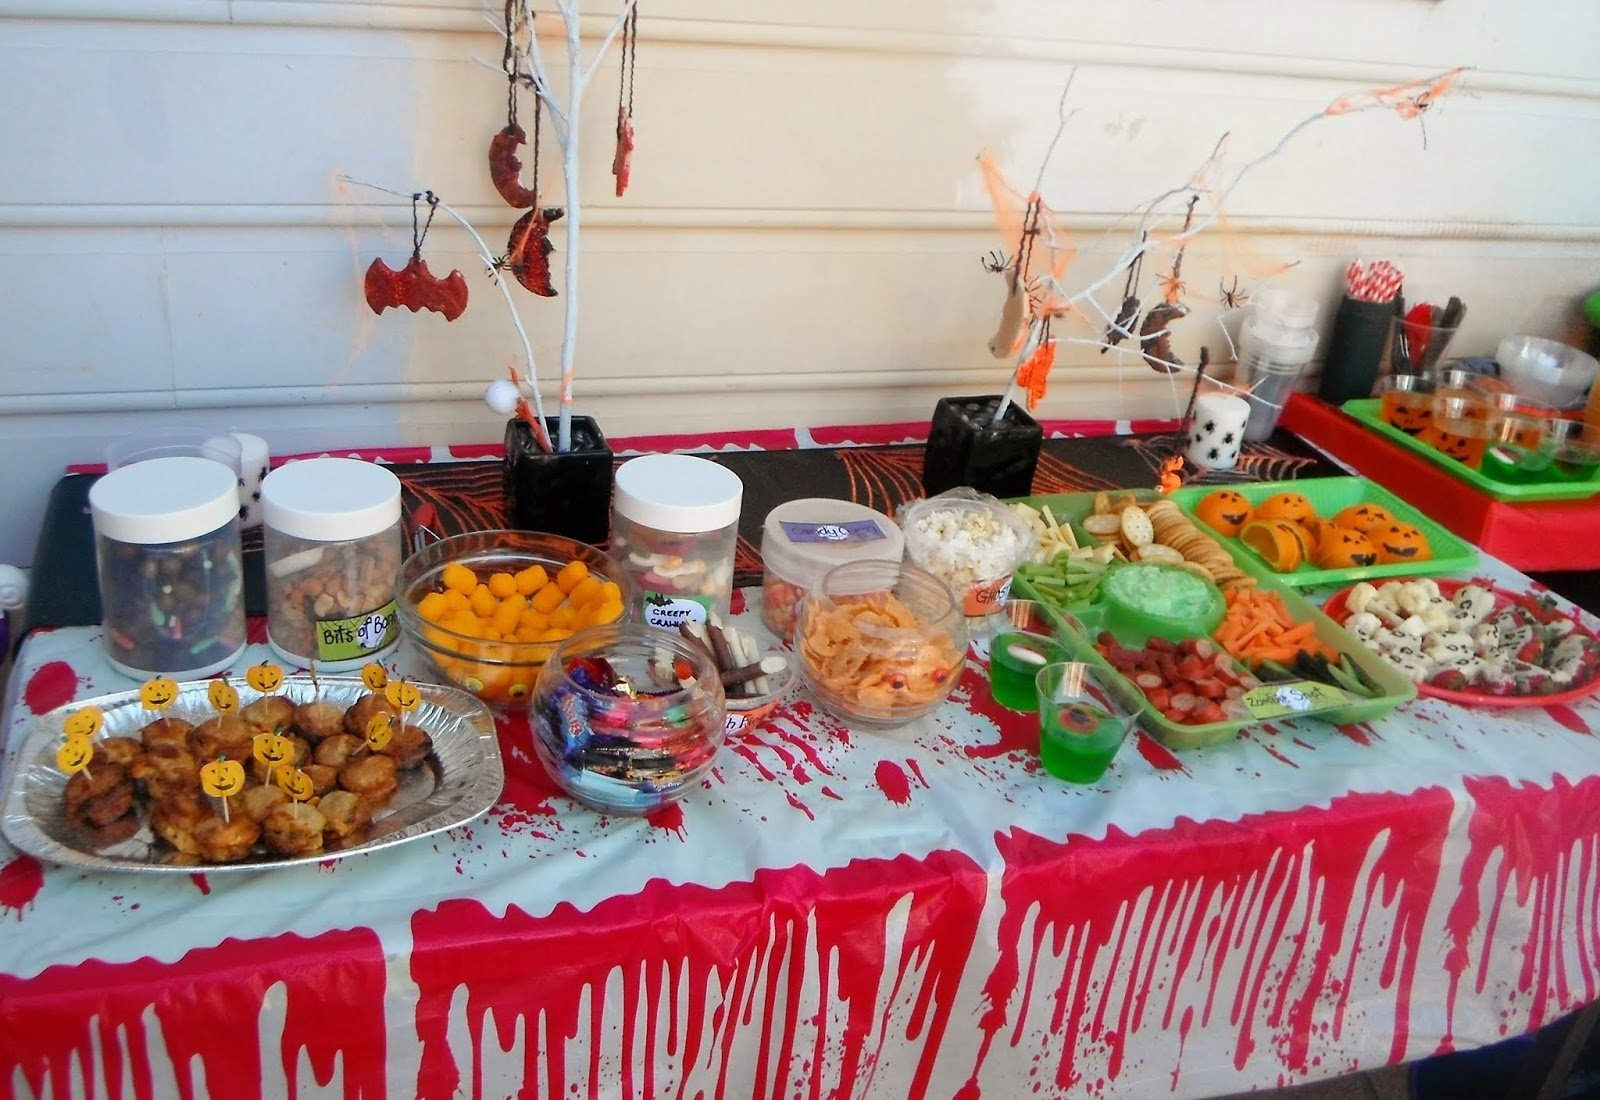 10 Awesome Halloween Party Food Ideas For Kids adventures at home with mum halloween party food 2